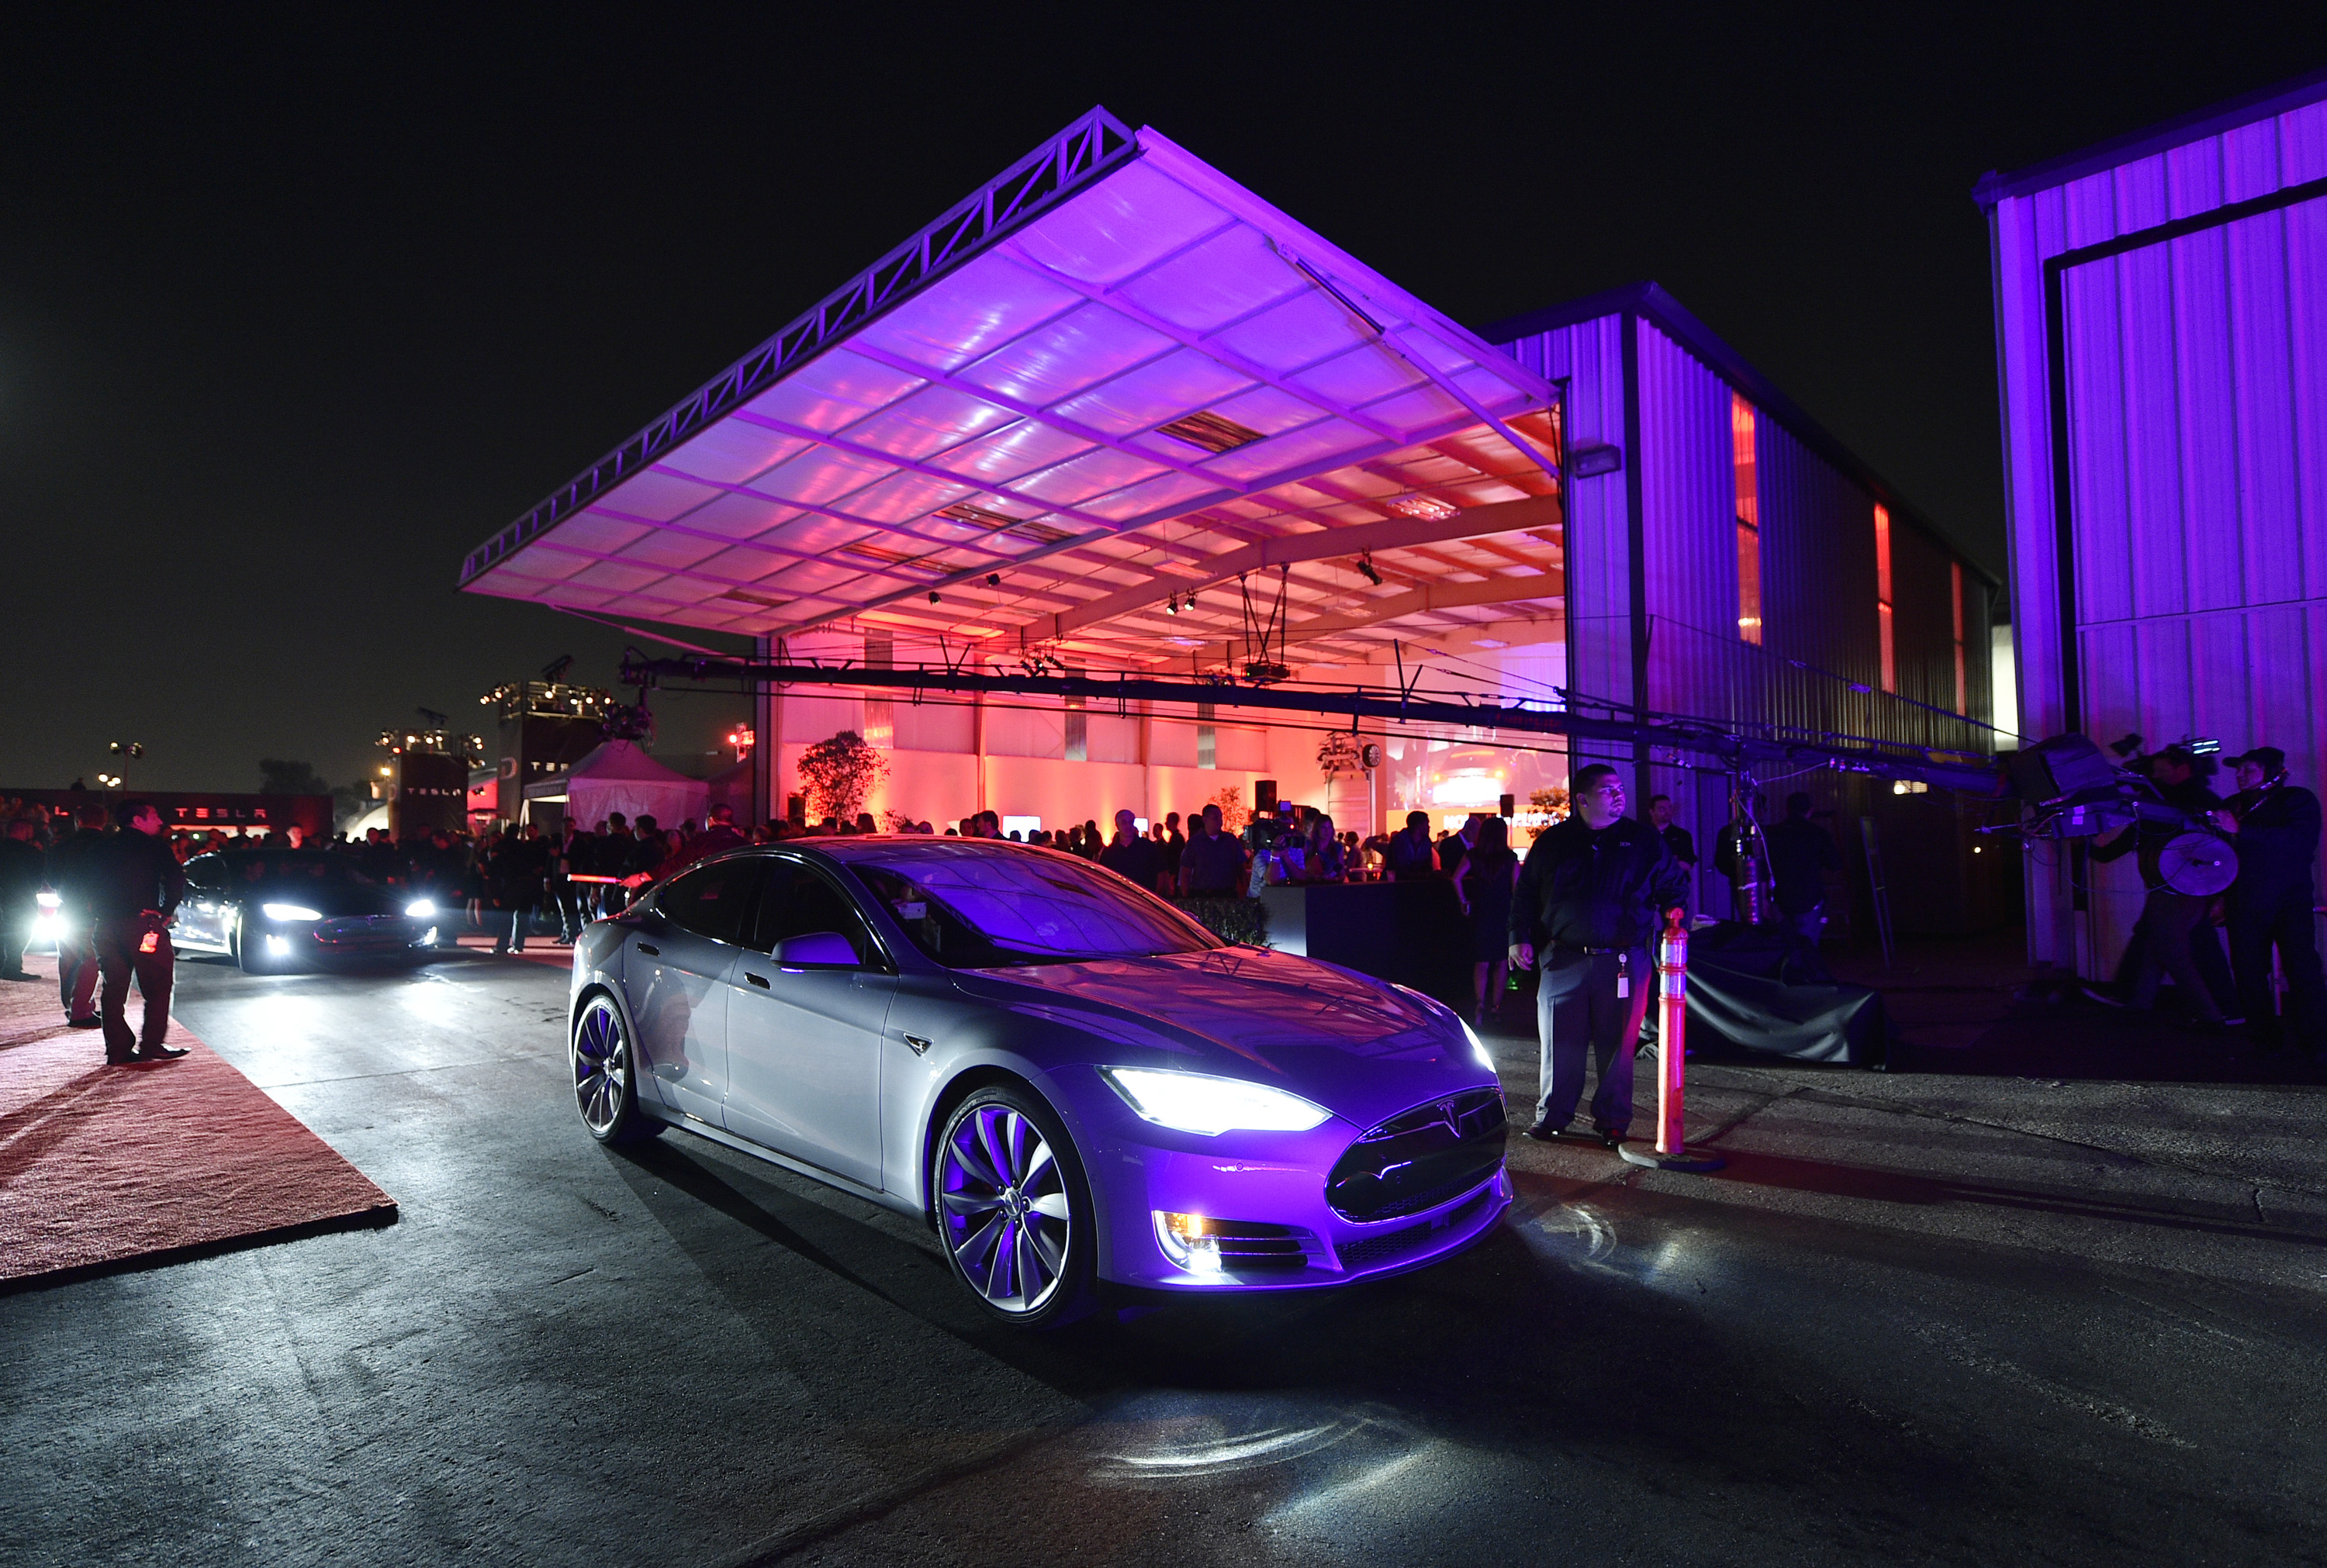 """Tesla owners take a ride in the new Tesla """"D"""" model electric sedan after Elon Musk, CEO of Tesla, unveiled the dual engine chassis of the new Tesla 'D' model, a faster and all-wheel-drive version of the Model S electric sedan, at the Hawthorne Airport October 09, 2014 in Hawthorne, California. (Photo by Kevork Djansezian/Getty Images)"""